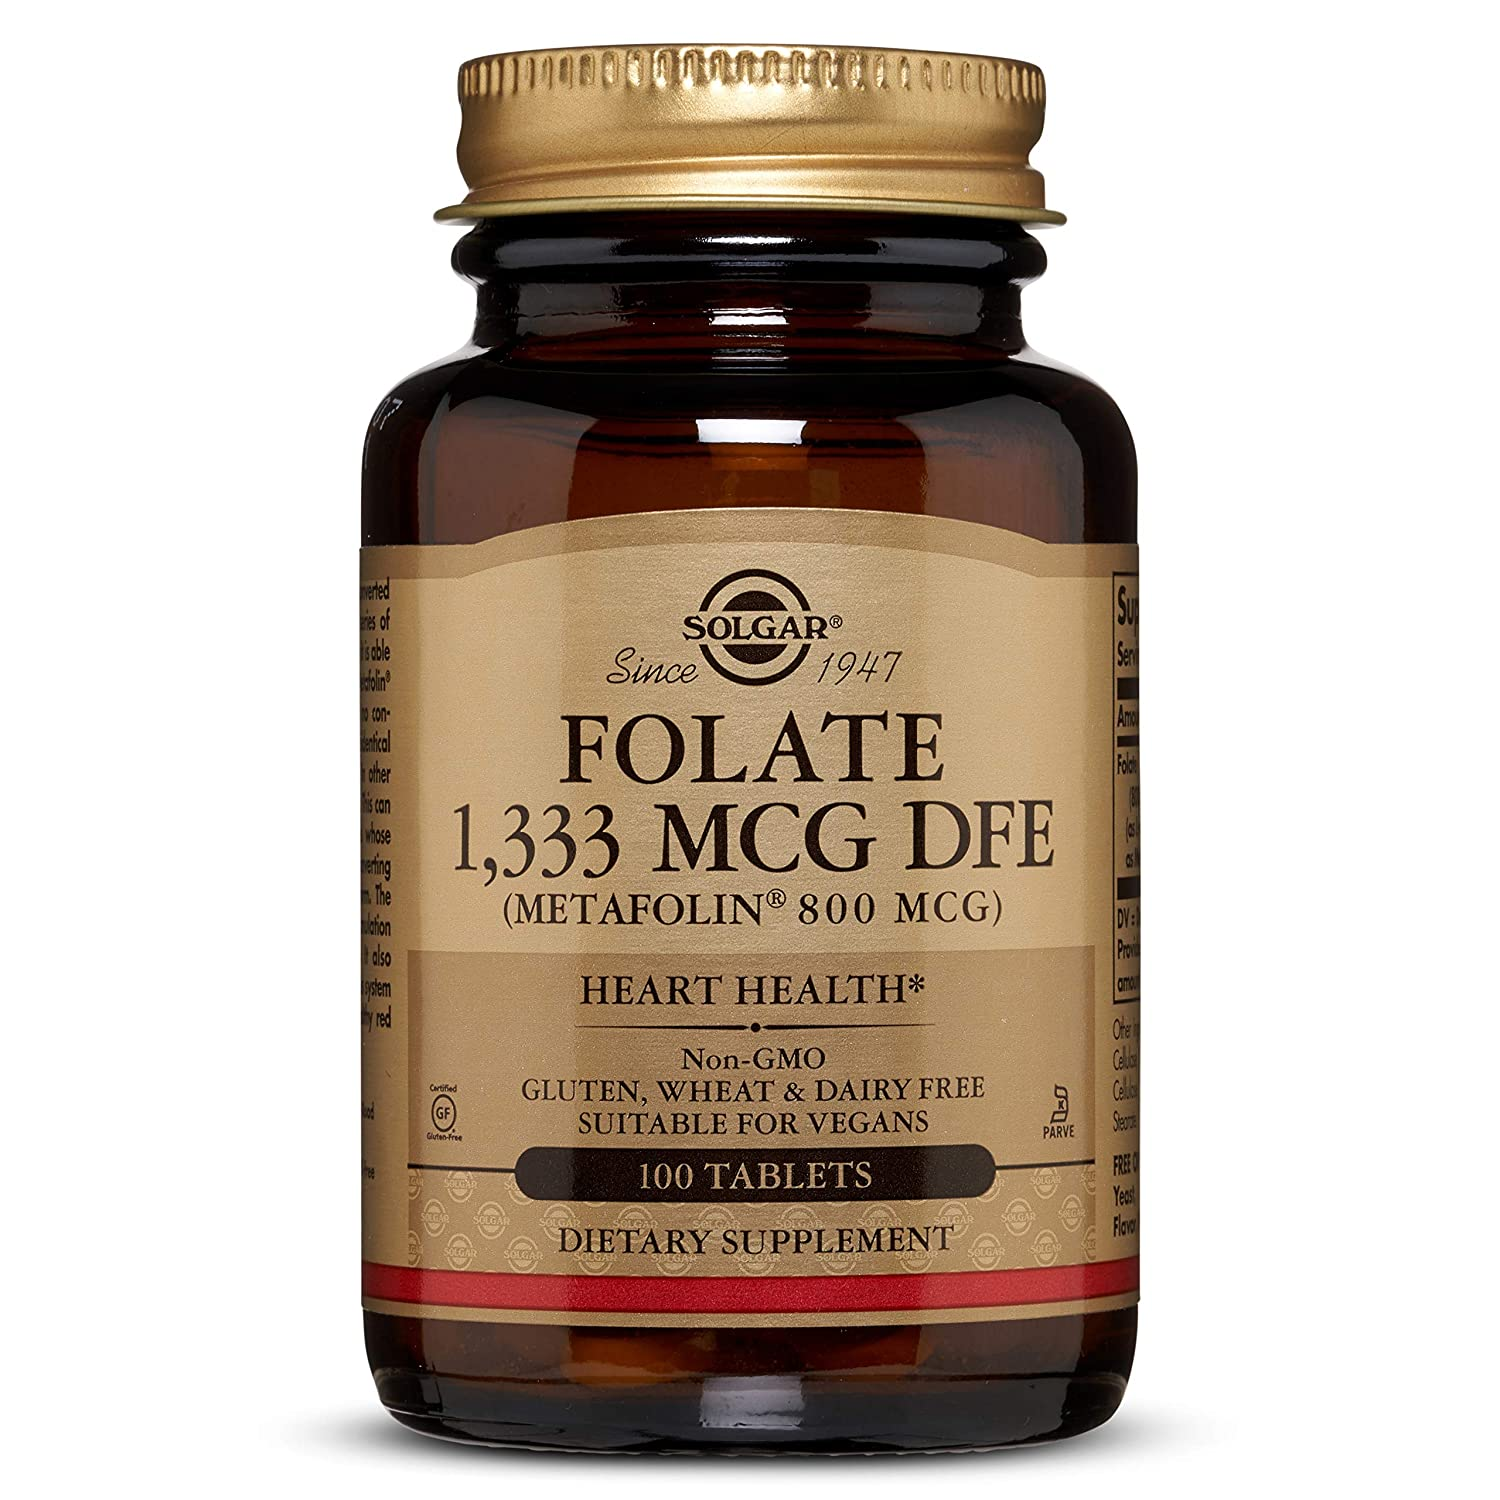 Folate 1,333 MCG DFE Metafolin 800 mcg Tablets – 100 Count – 2 Pack